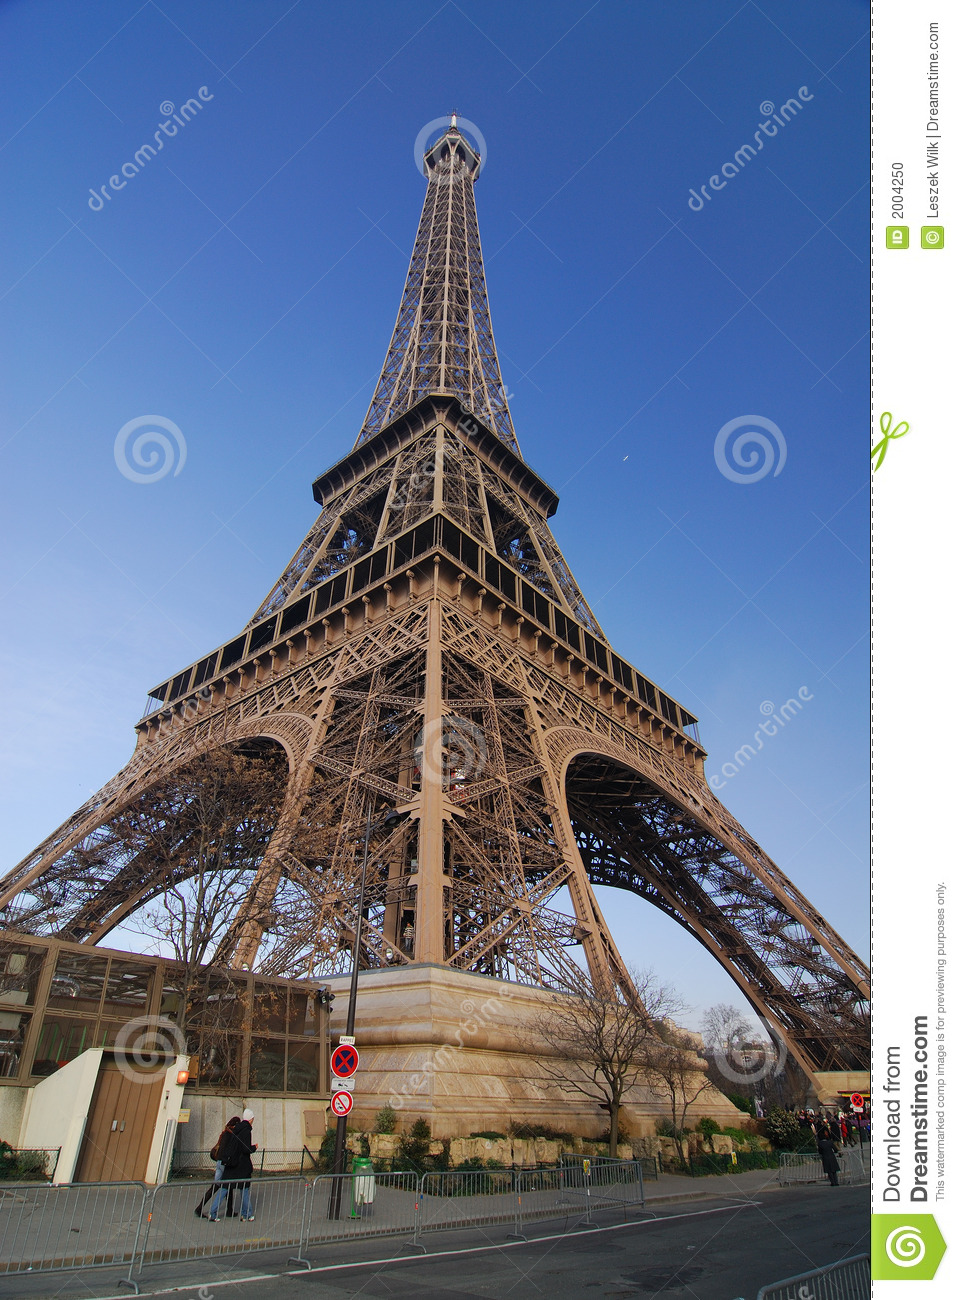 paris tour eiffel stock photo image 2004250. Black Bedroom Furniture Sets. Home Design Ideas